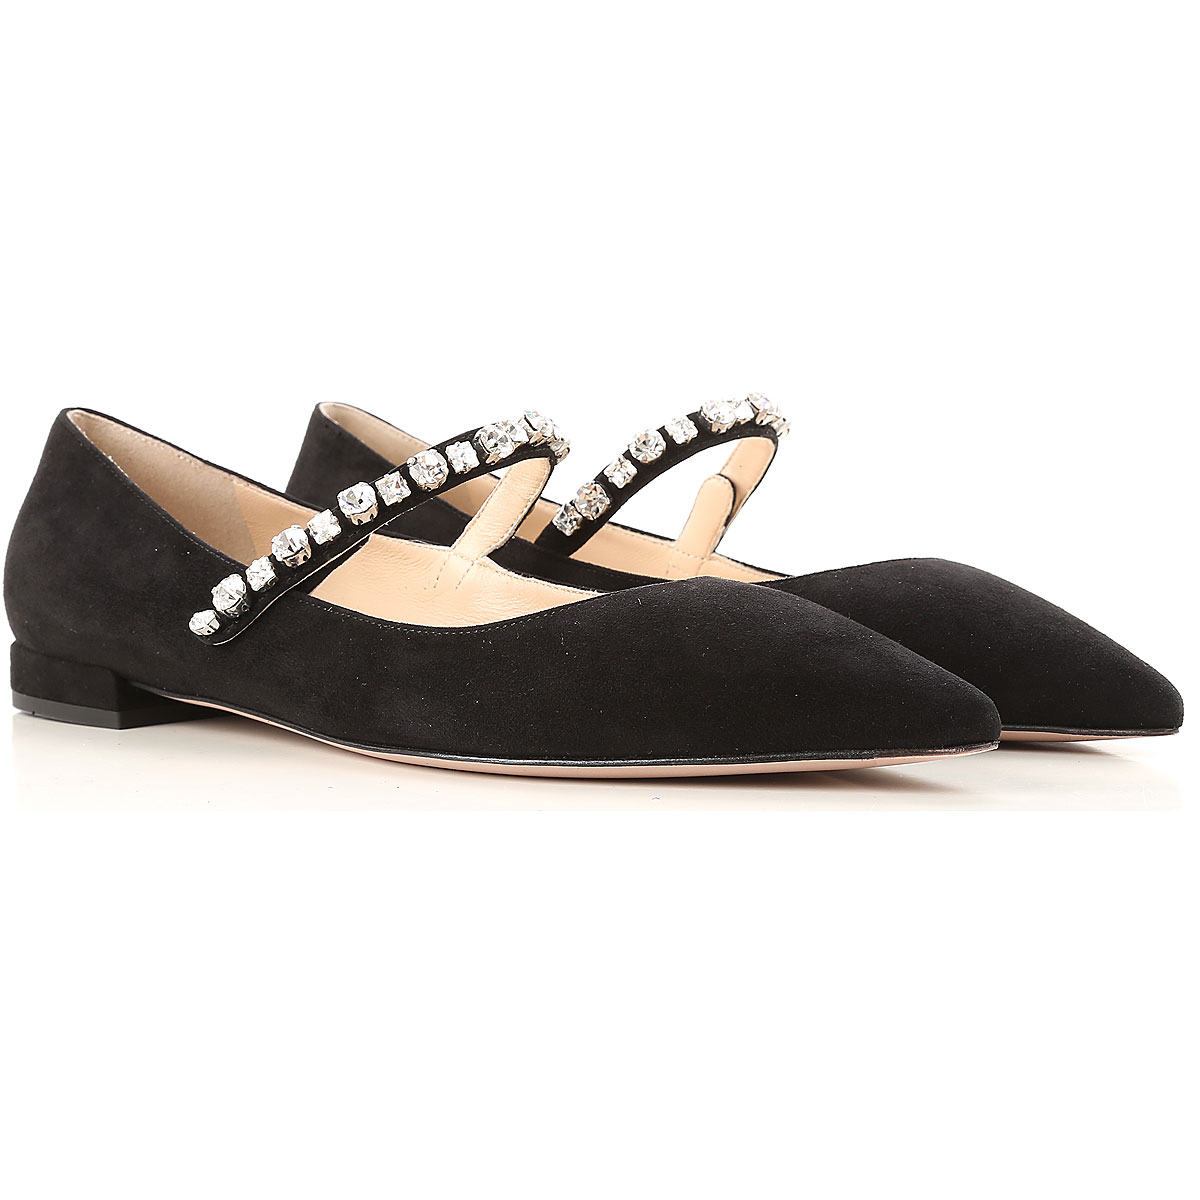 Image of Prada Ballet Flats Ballerina Shoes for Women, Black, Suede leather, 2017, 6 6.5 7 7.5 8 8.5 9 9.5